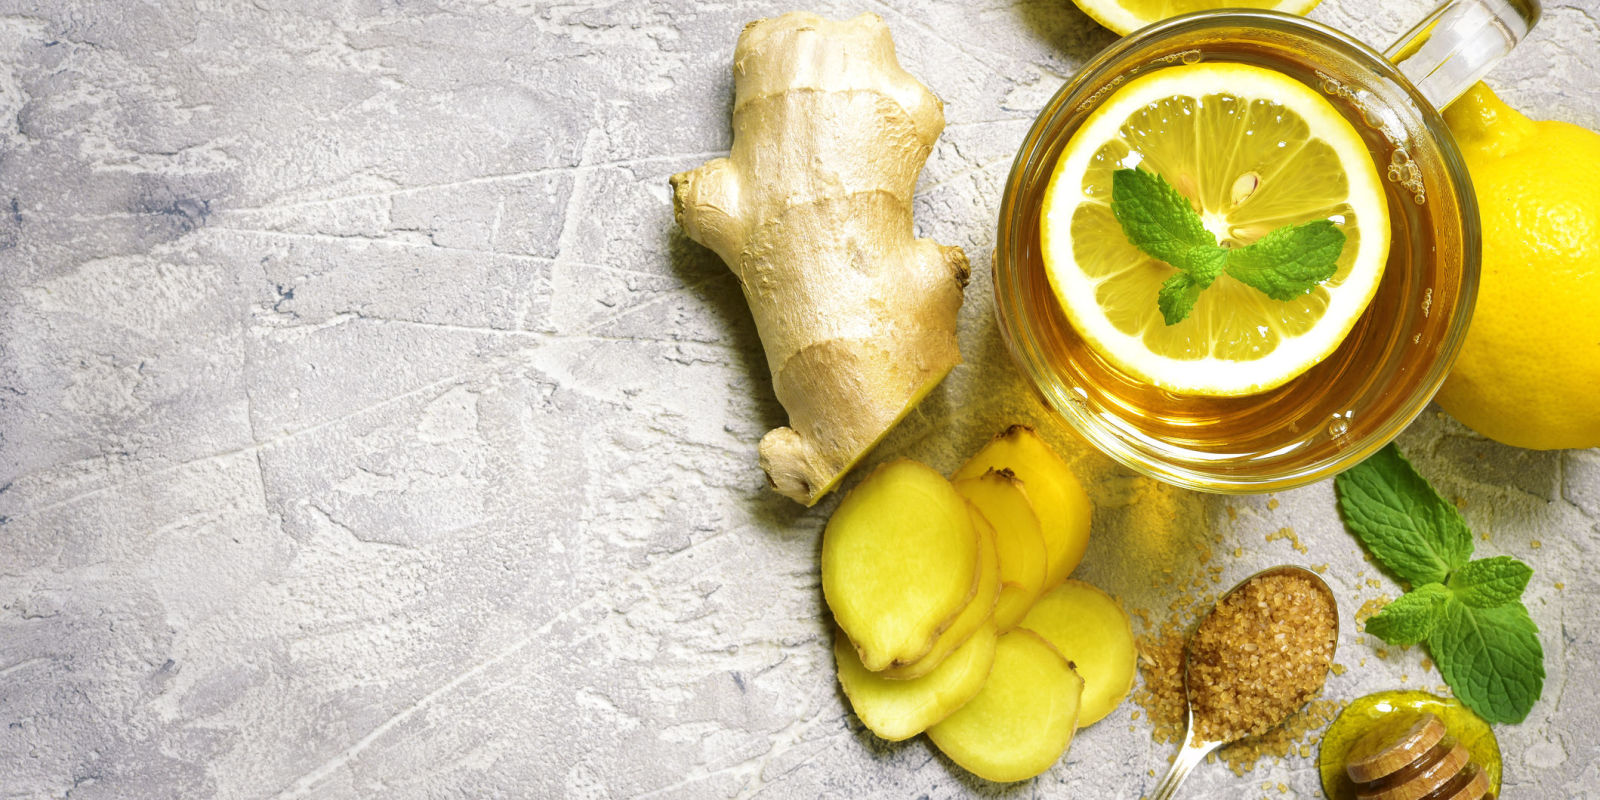 how to stop a chesty cough naturally